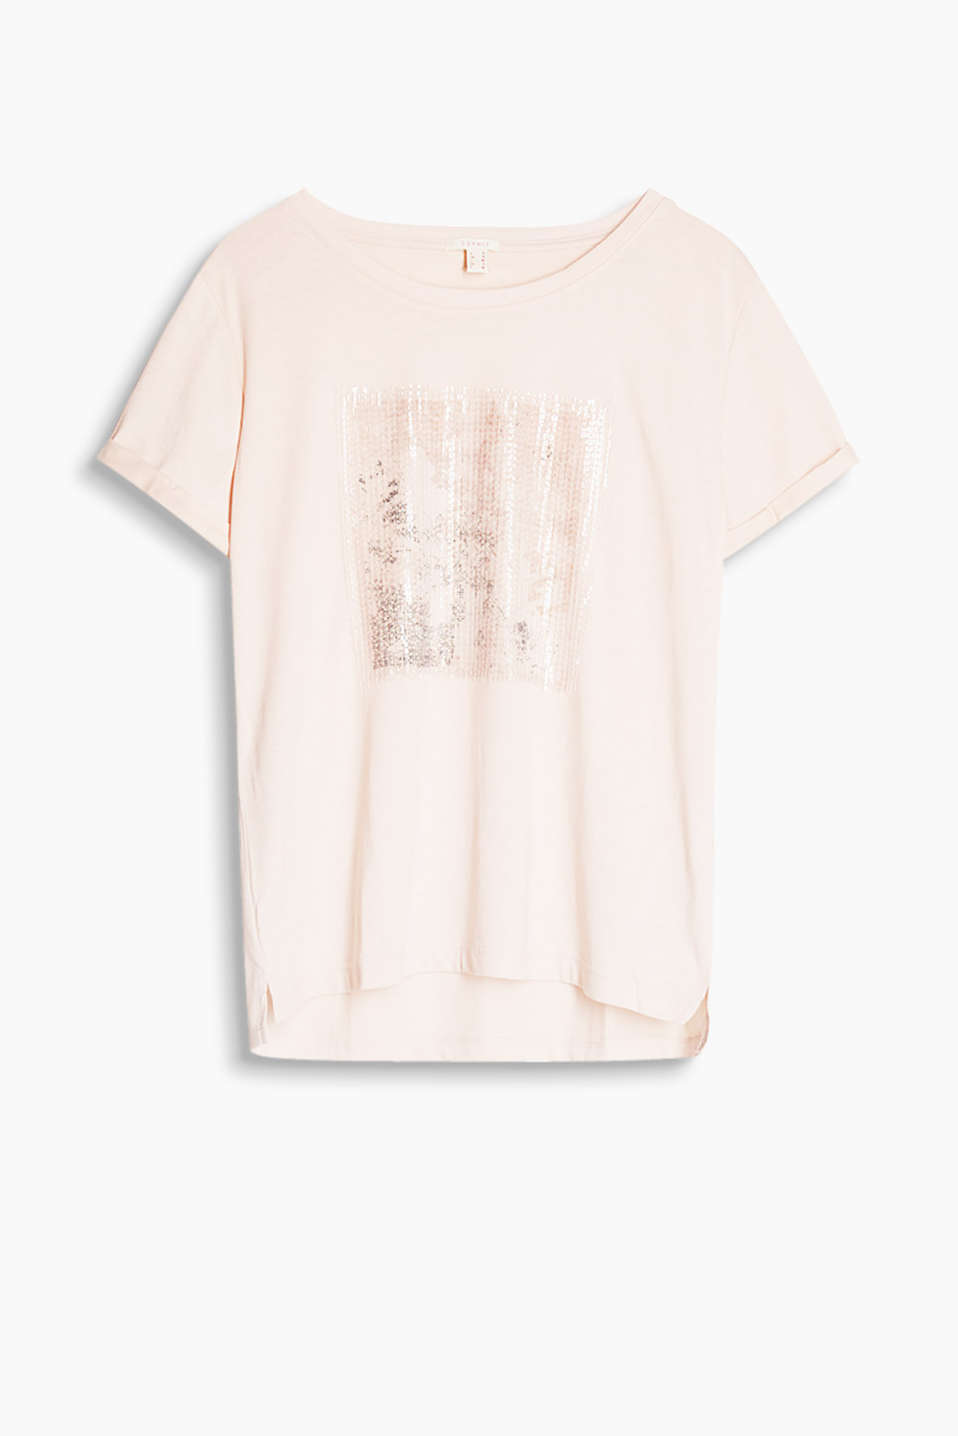 Soft slub jersey T-shirt with a partially shiny print and subtle sequin embellishment